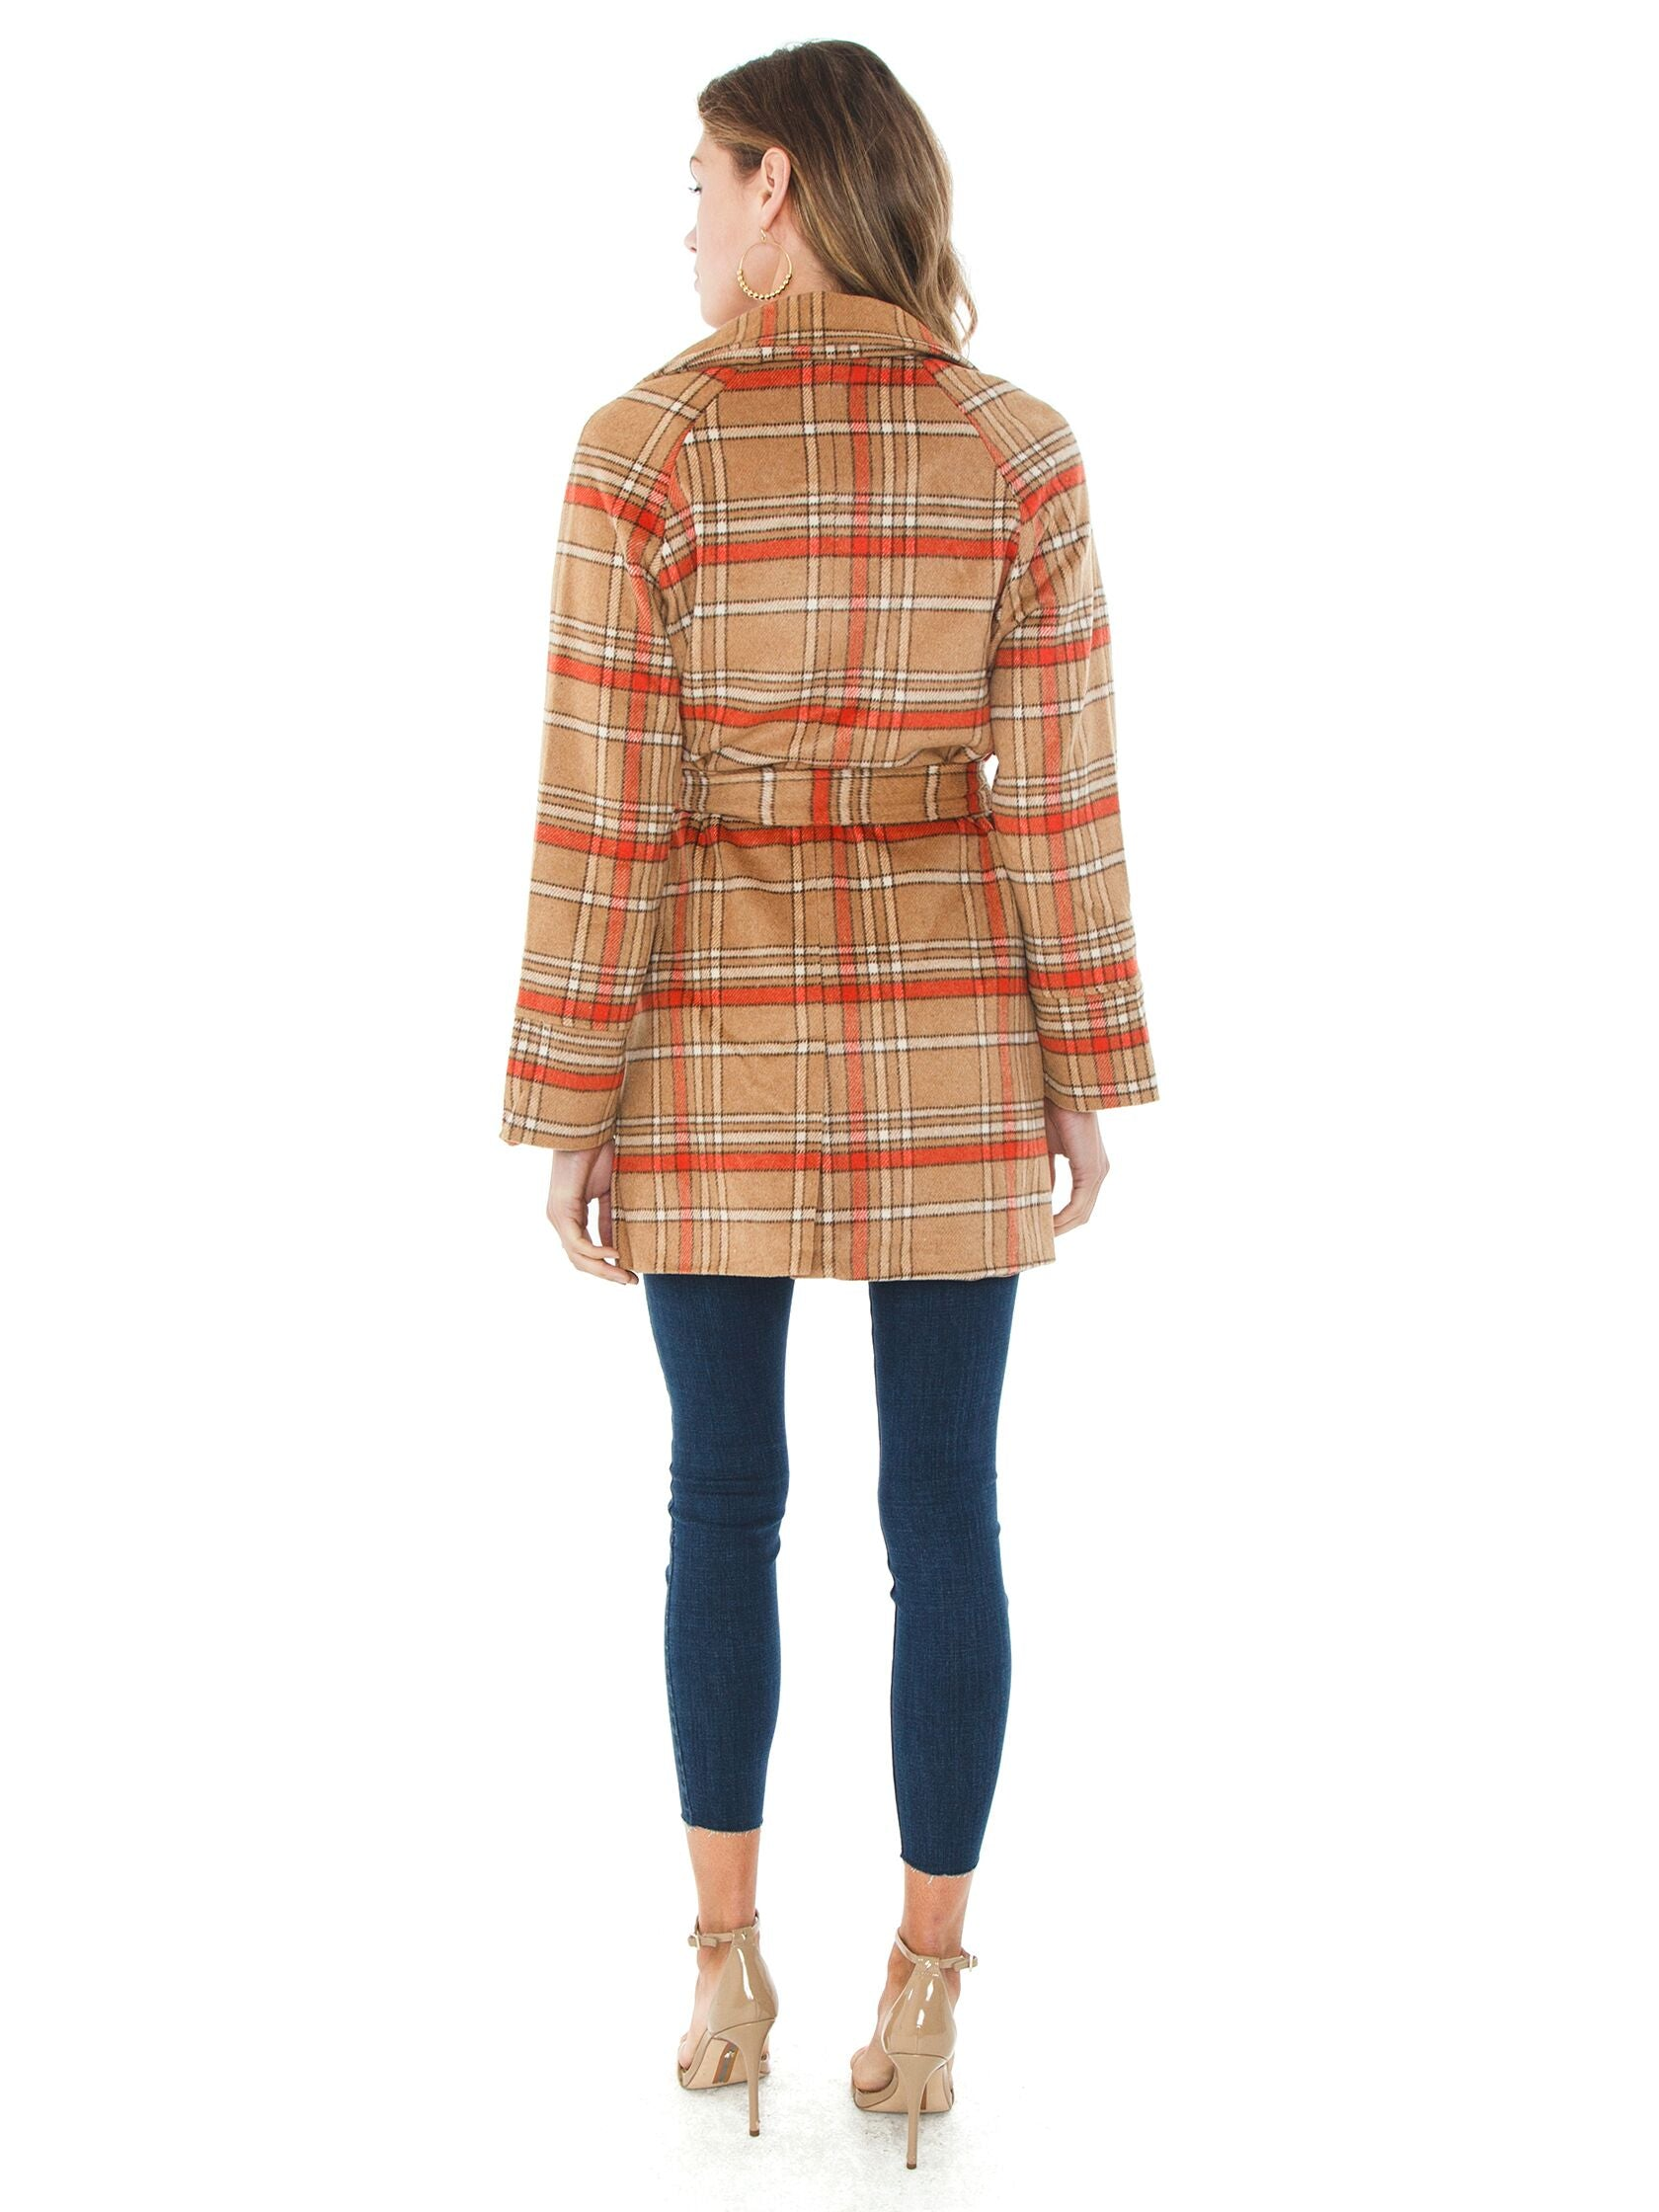 Women wearing a jacket rental from MINKPINK called Check Coat